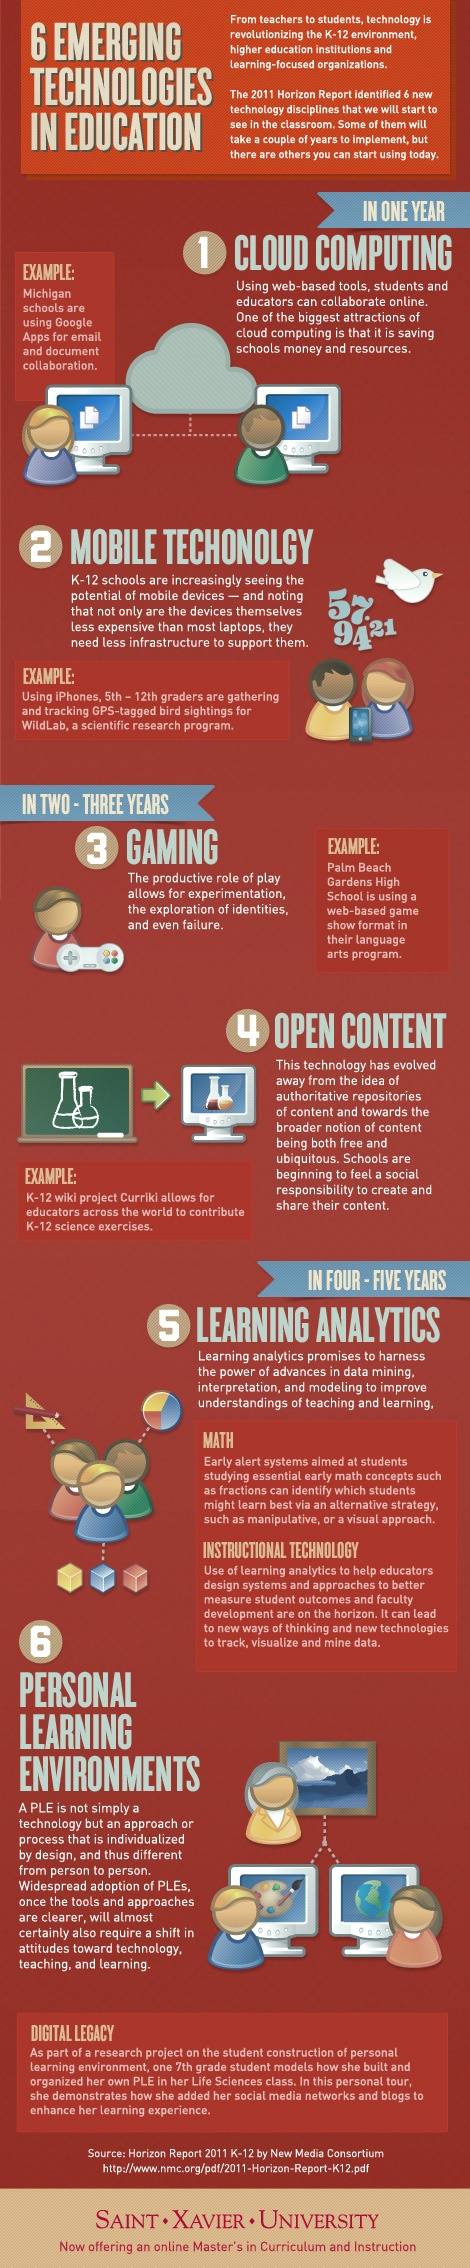 Top six emerging technologies remodels the education system